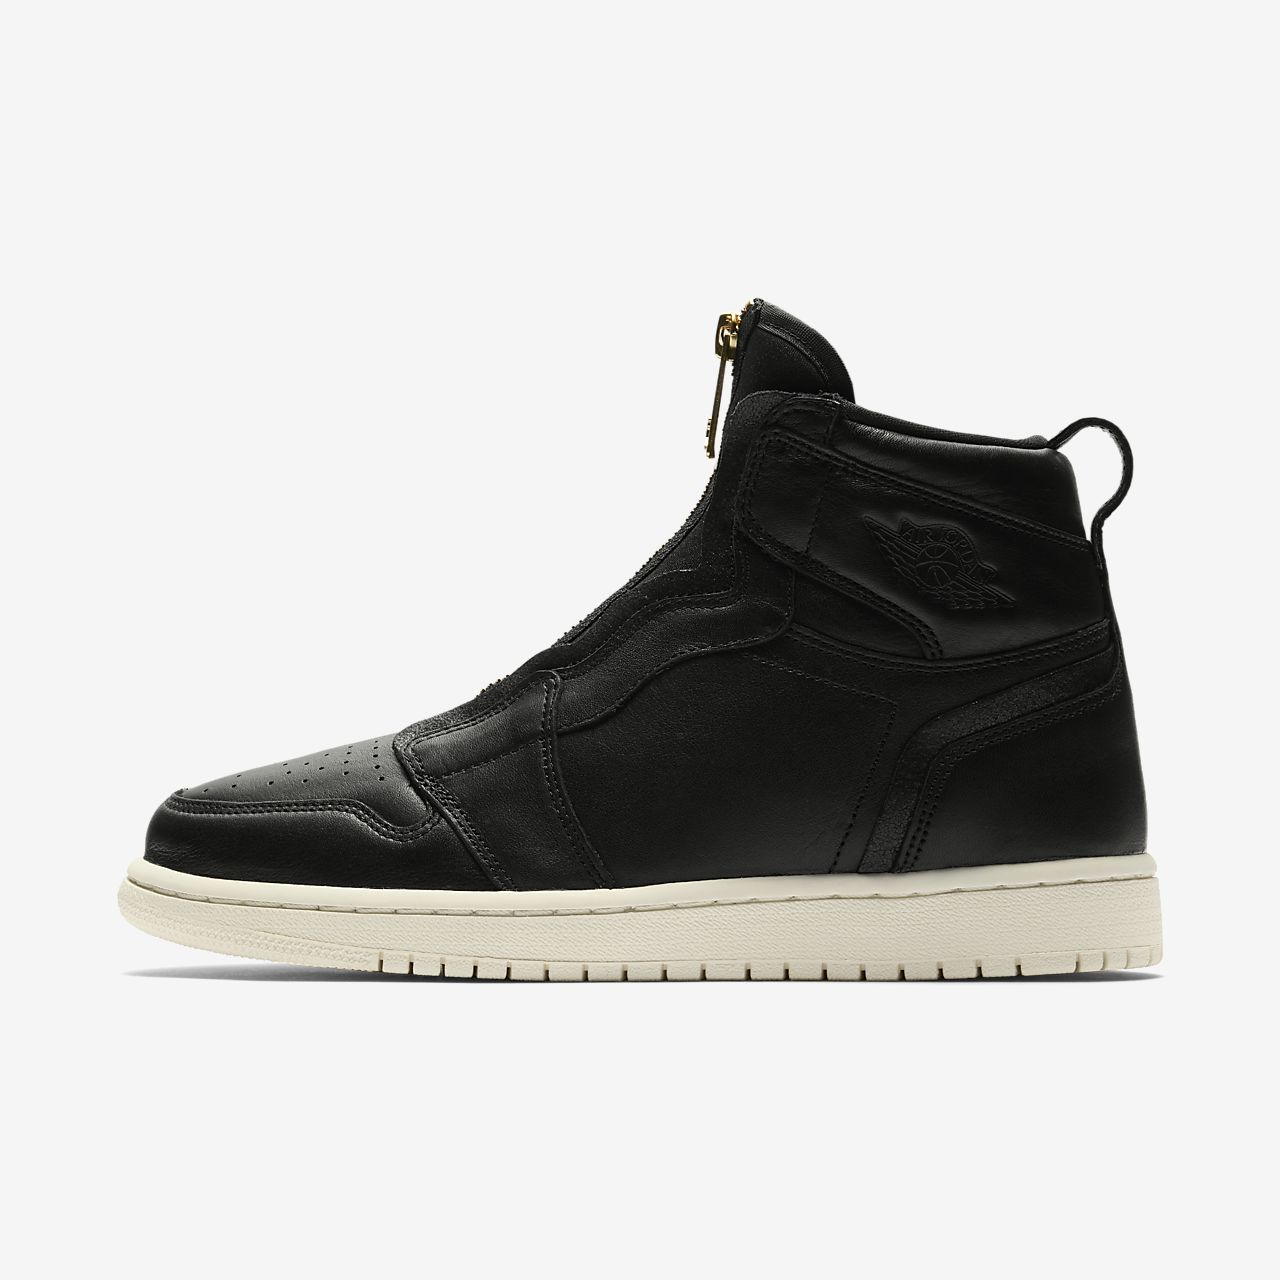 best website 3d5a3 8e280 Air Jordan 1 High Zip Womens Shoe